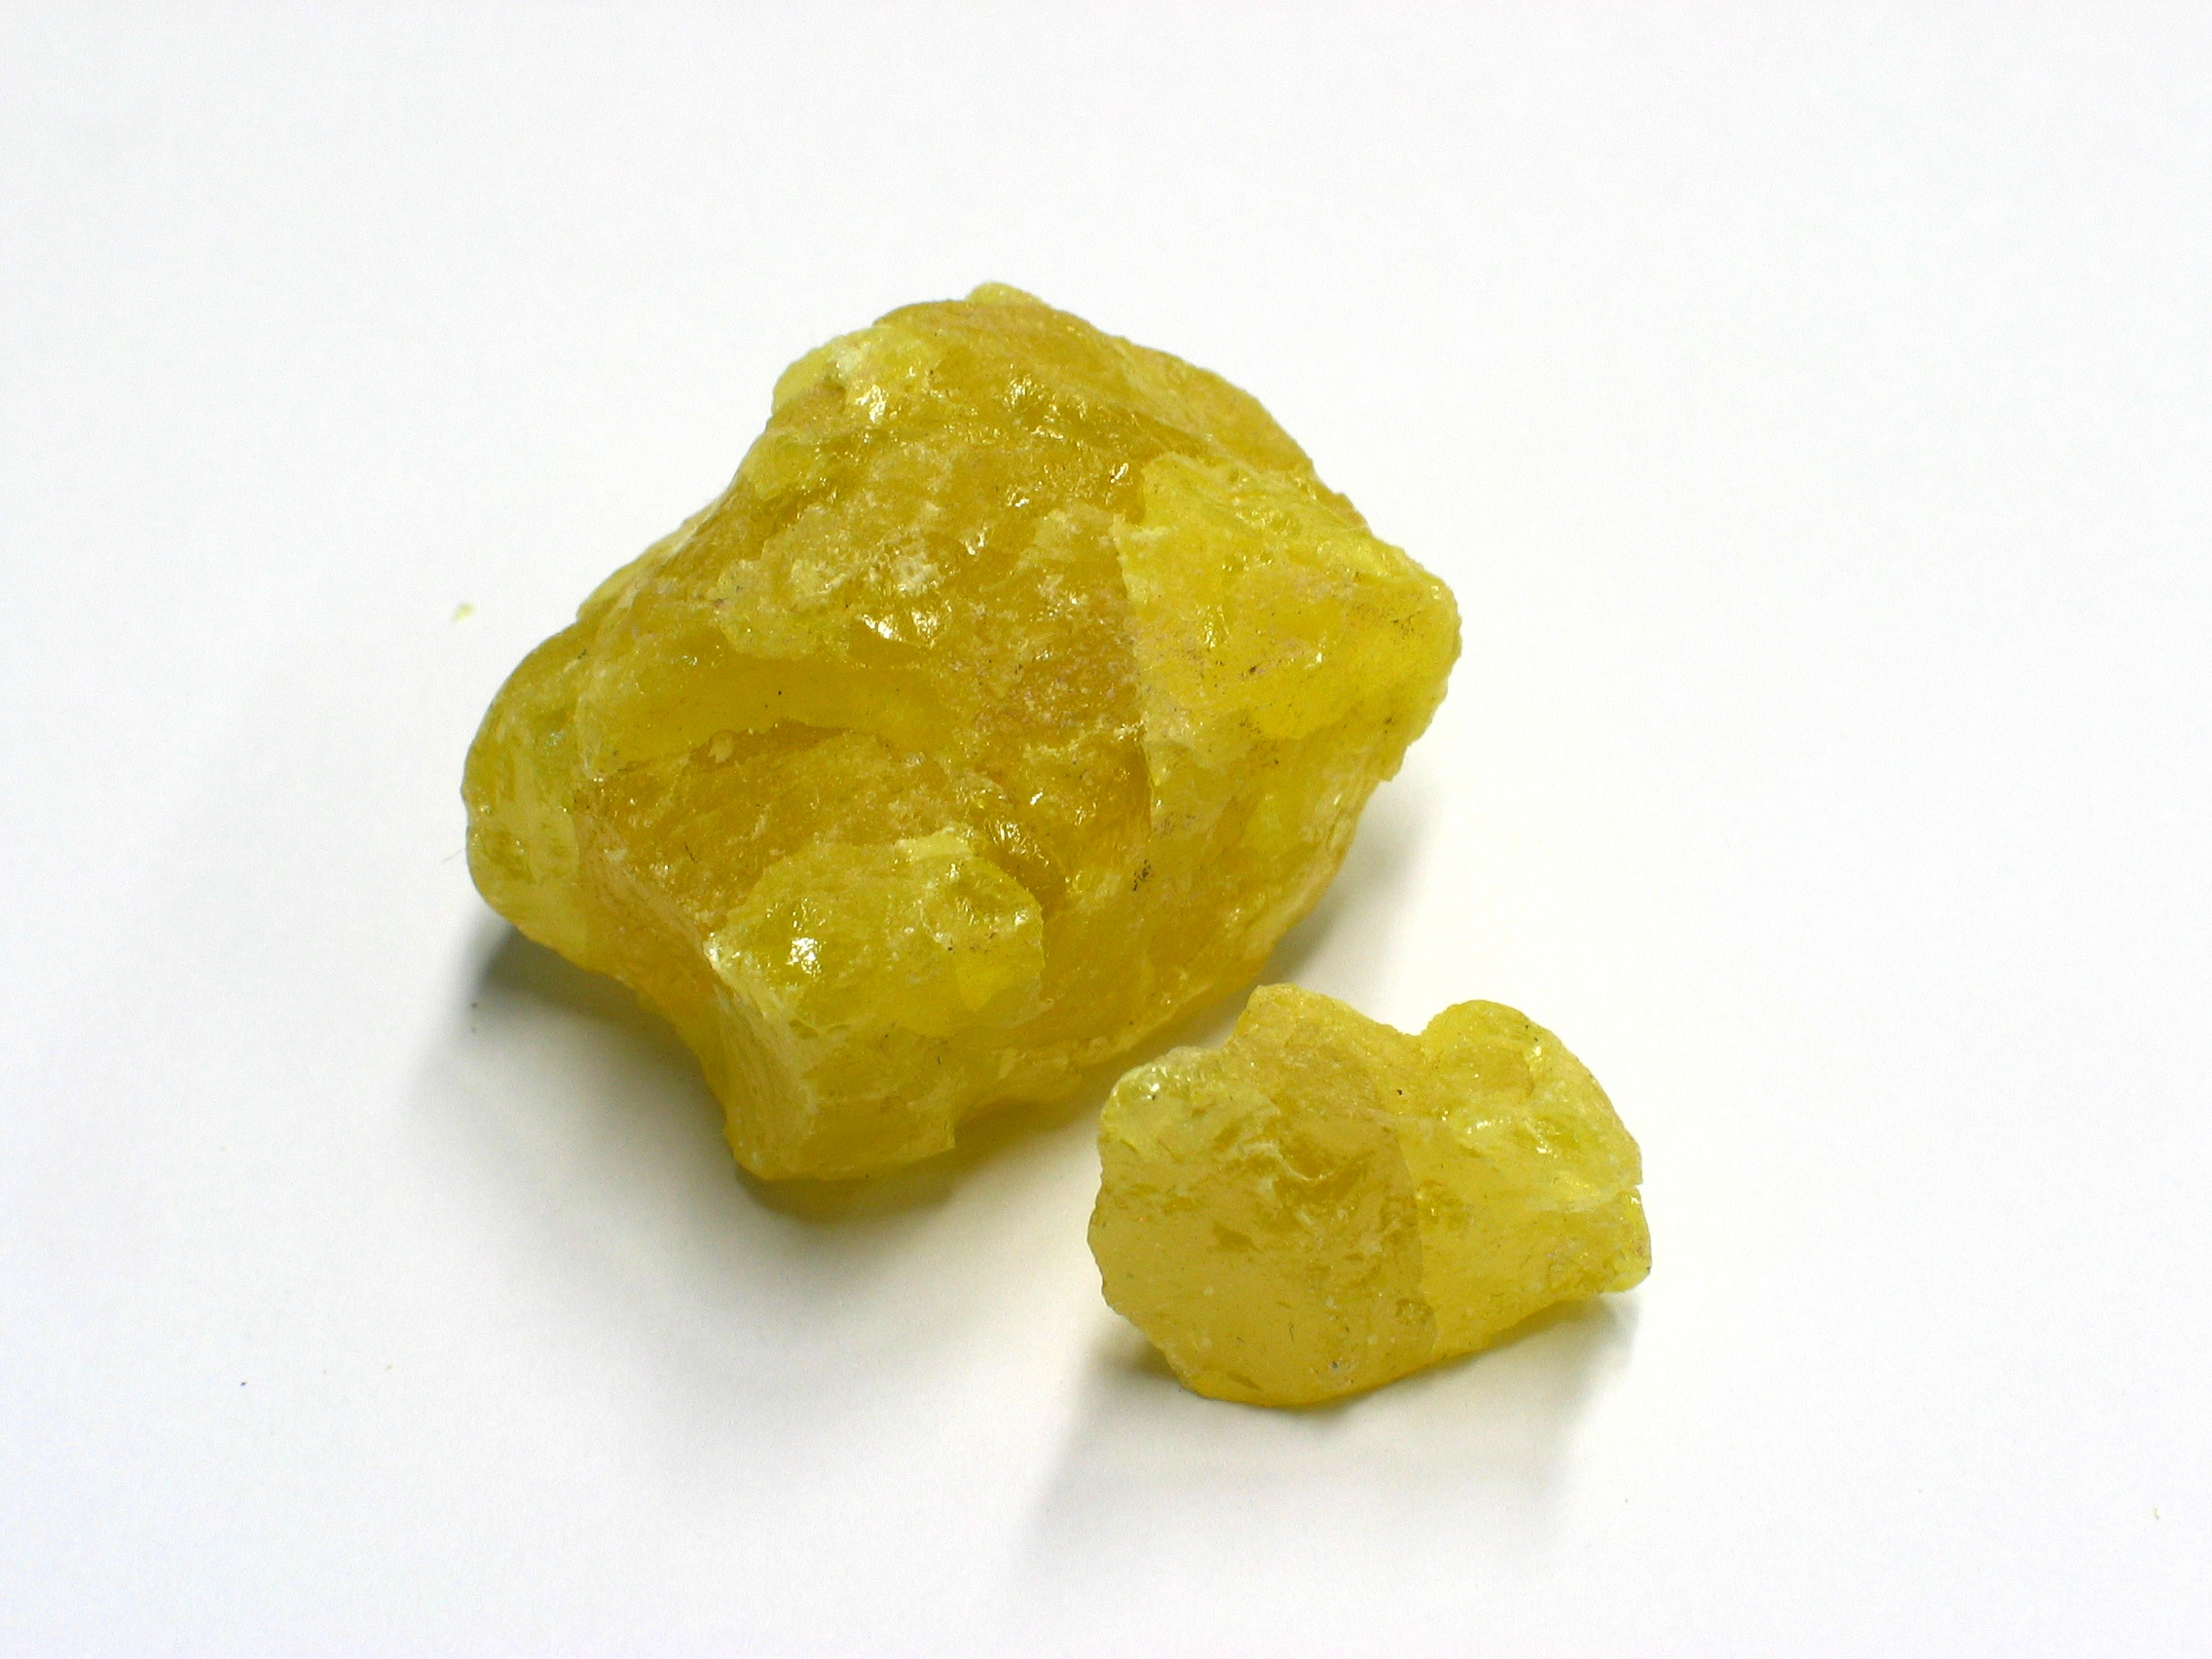 File:Min sulfur.jpg - Wikimedia Commons